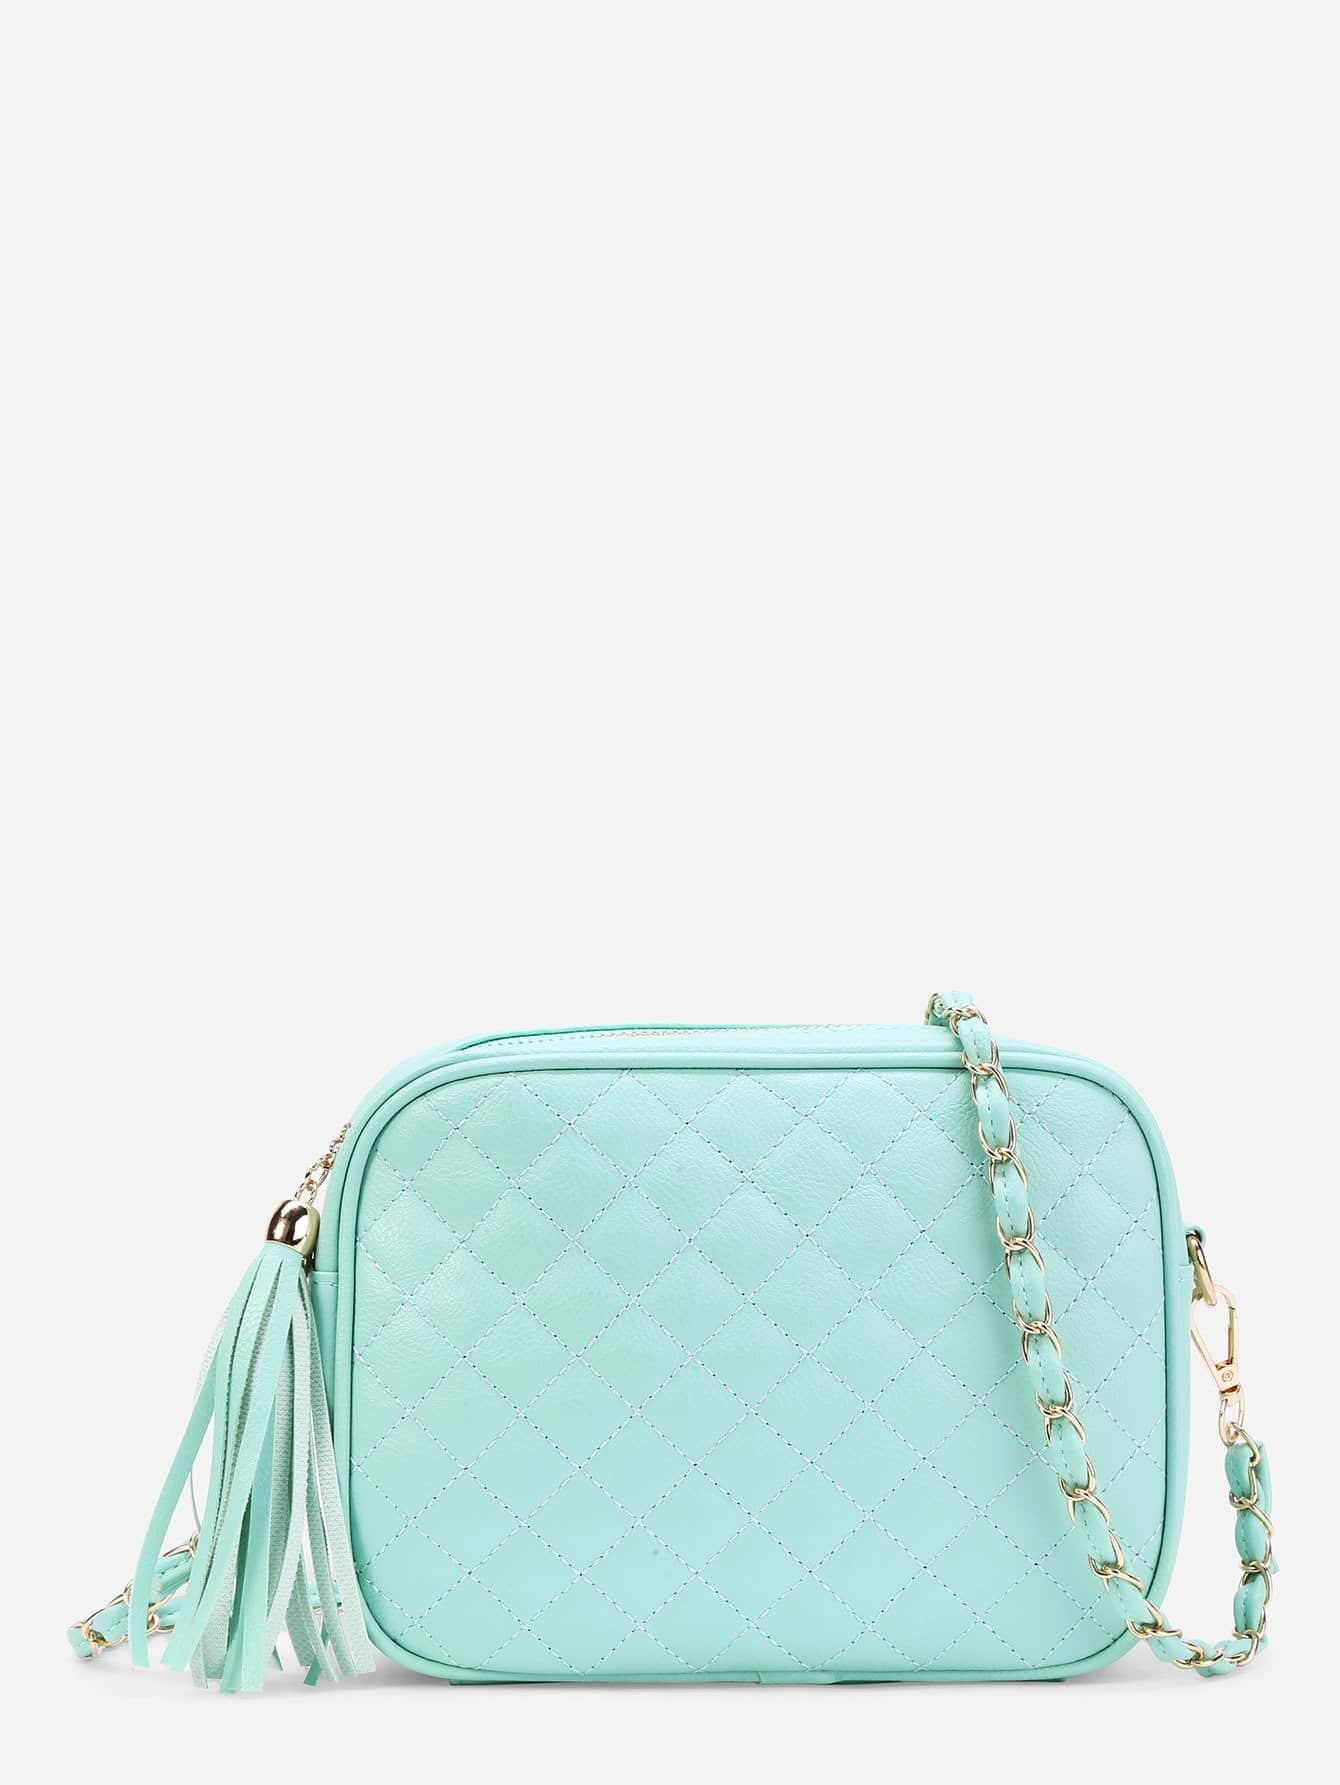 Tassel Detail Quilted Crossbody Bag tassel detail straw crossbody bag